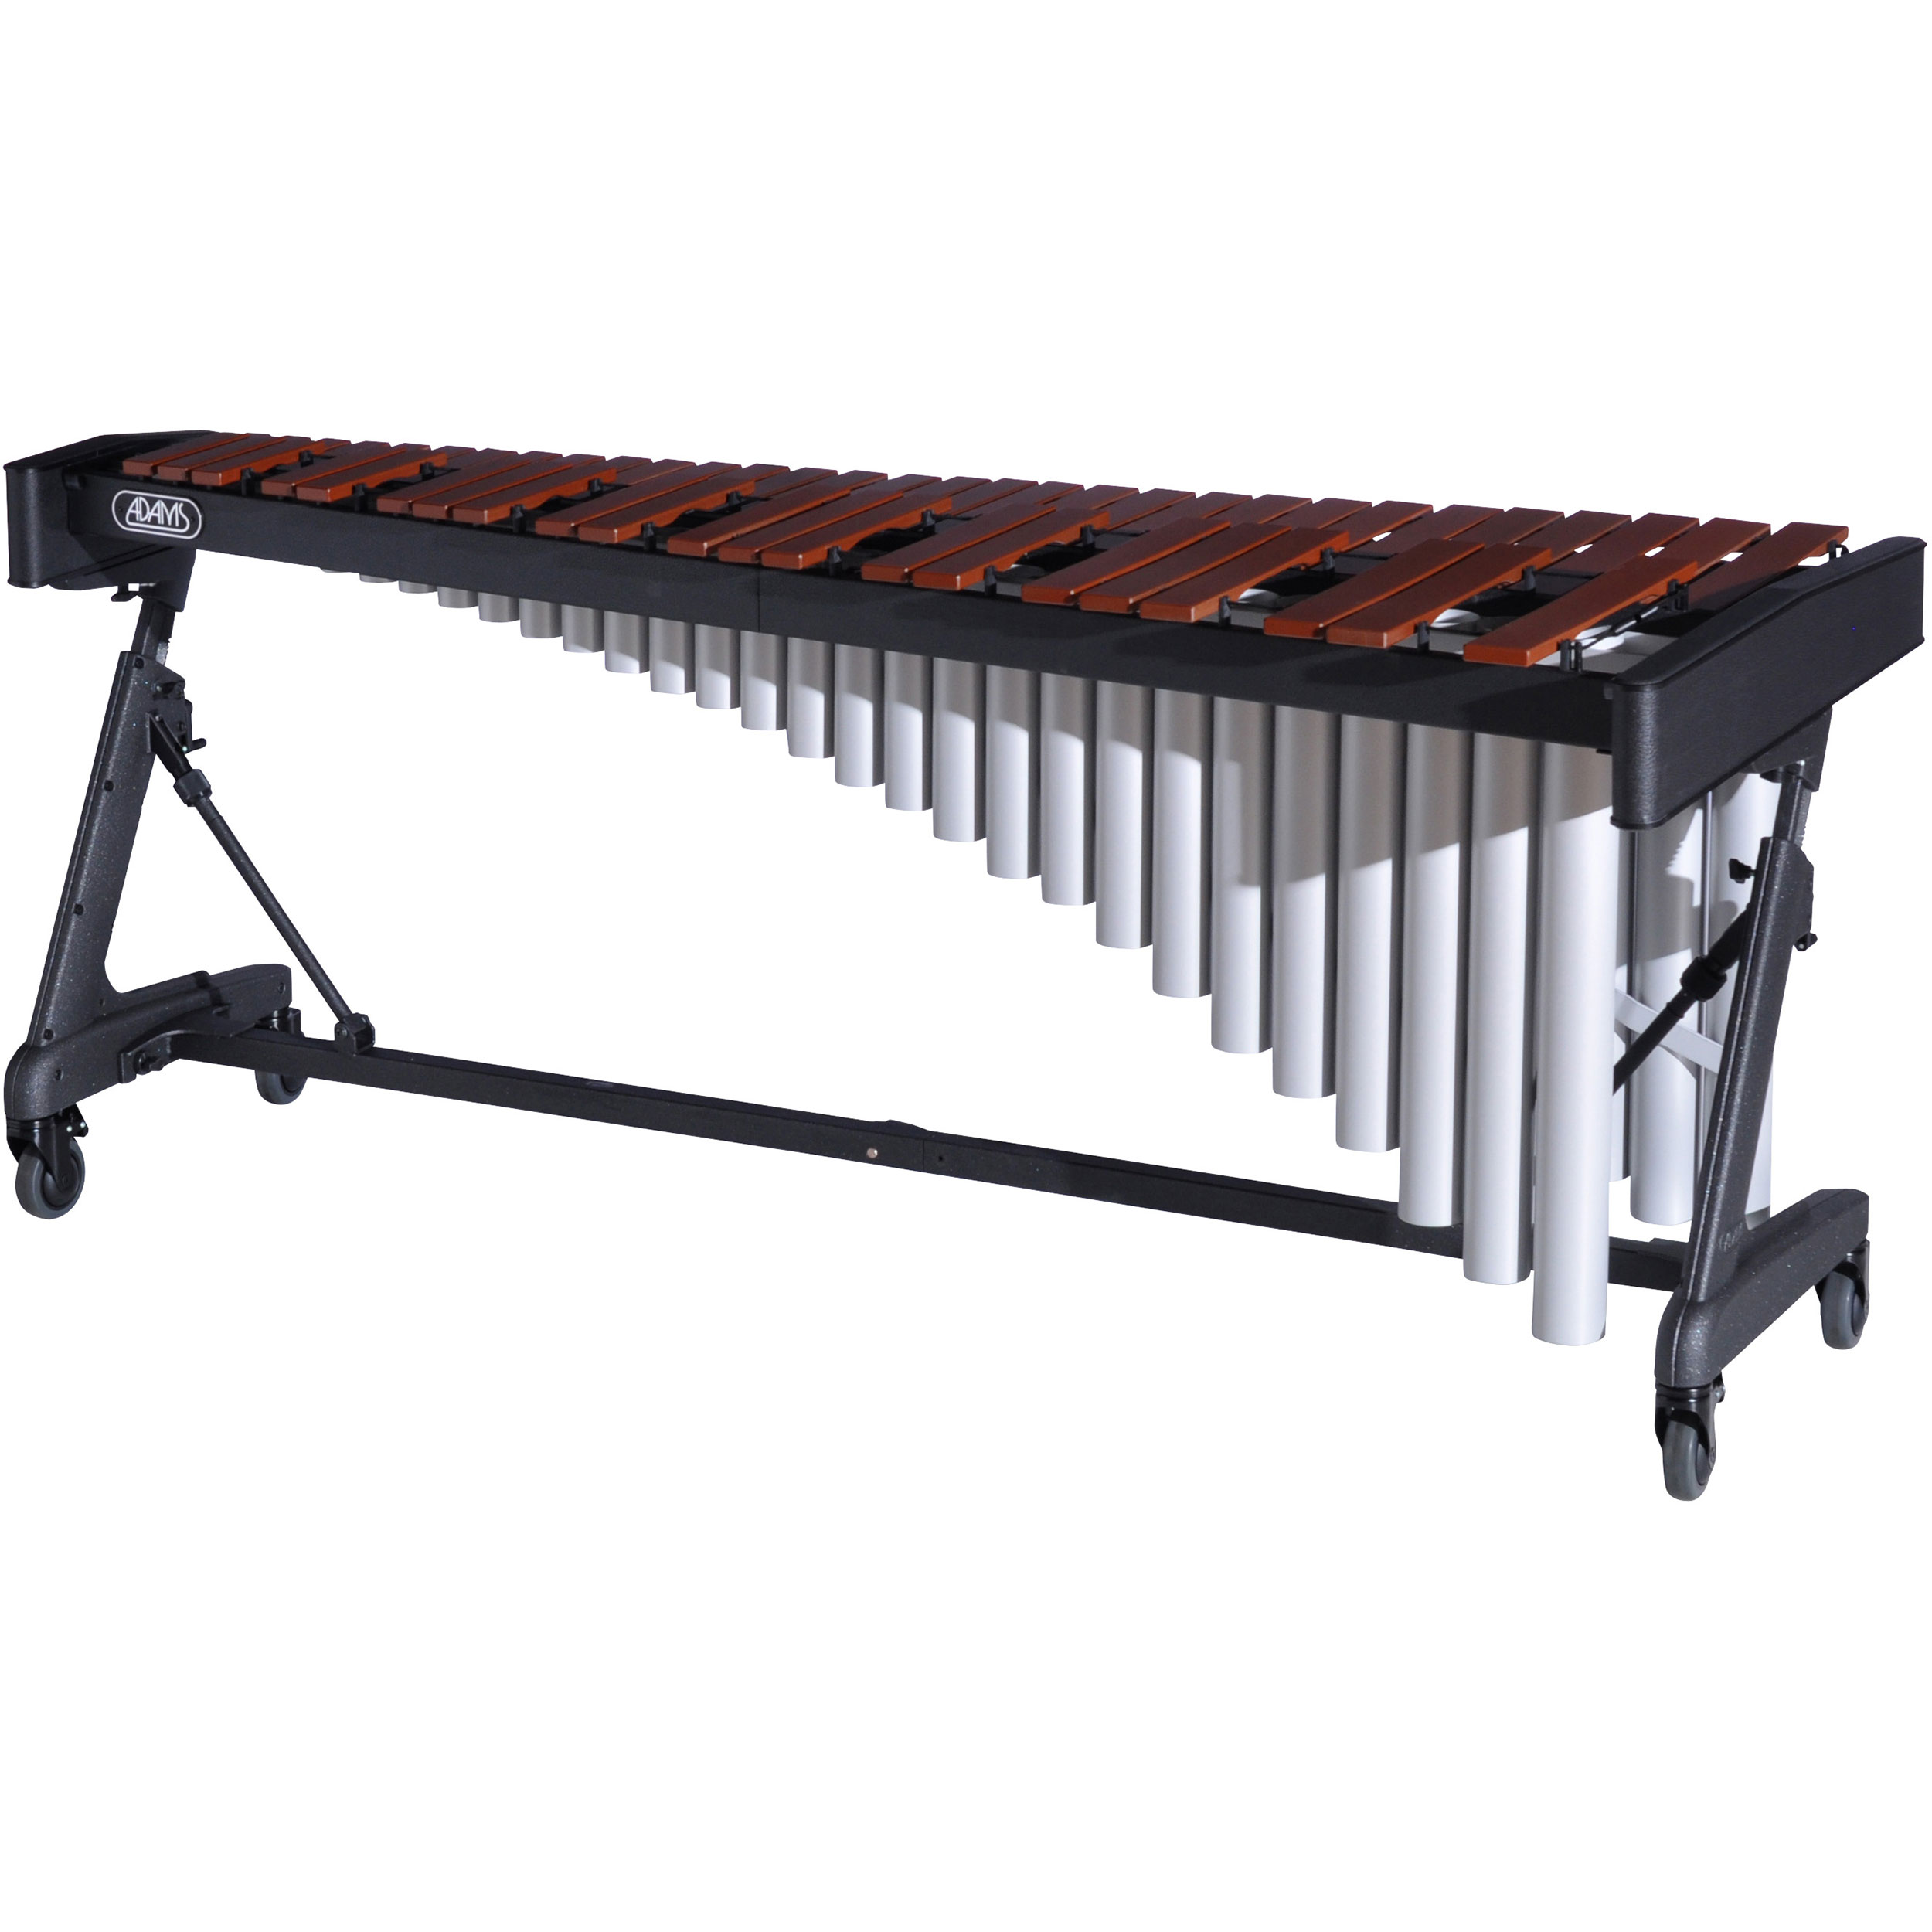 Adams 4.3 Octave Concert Series Synthetic Marimba with Apex Frame